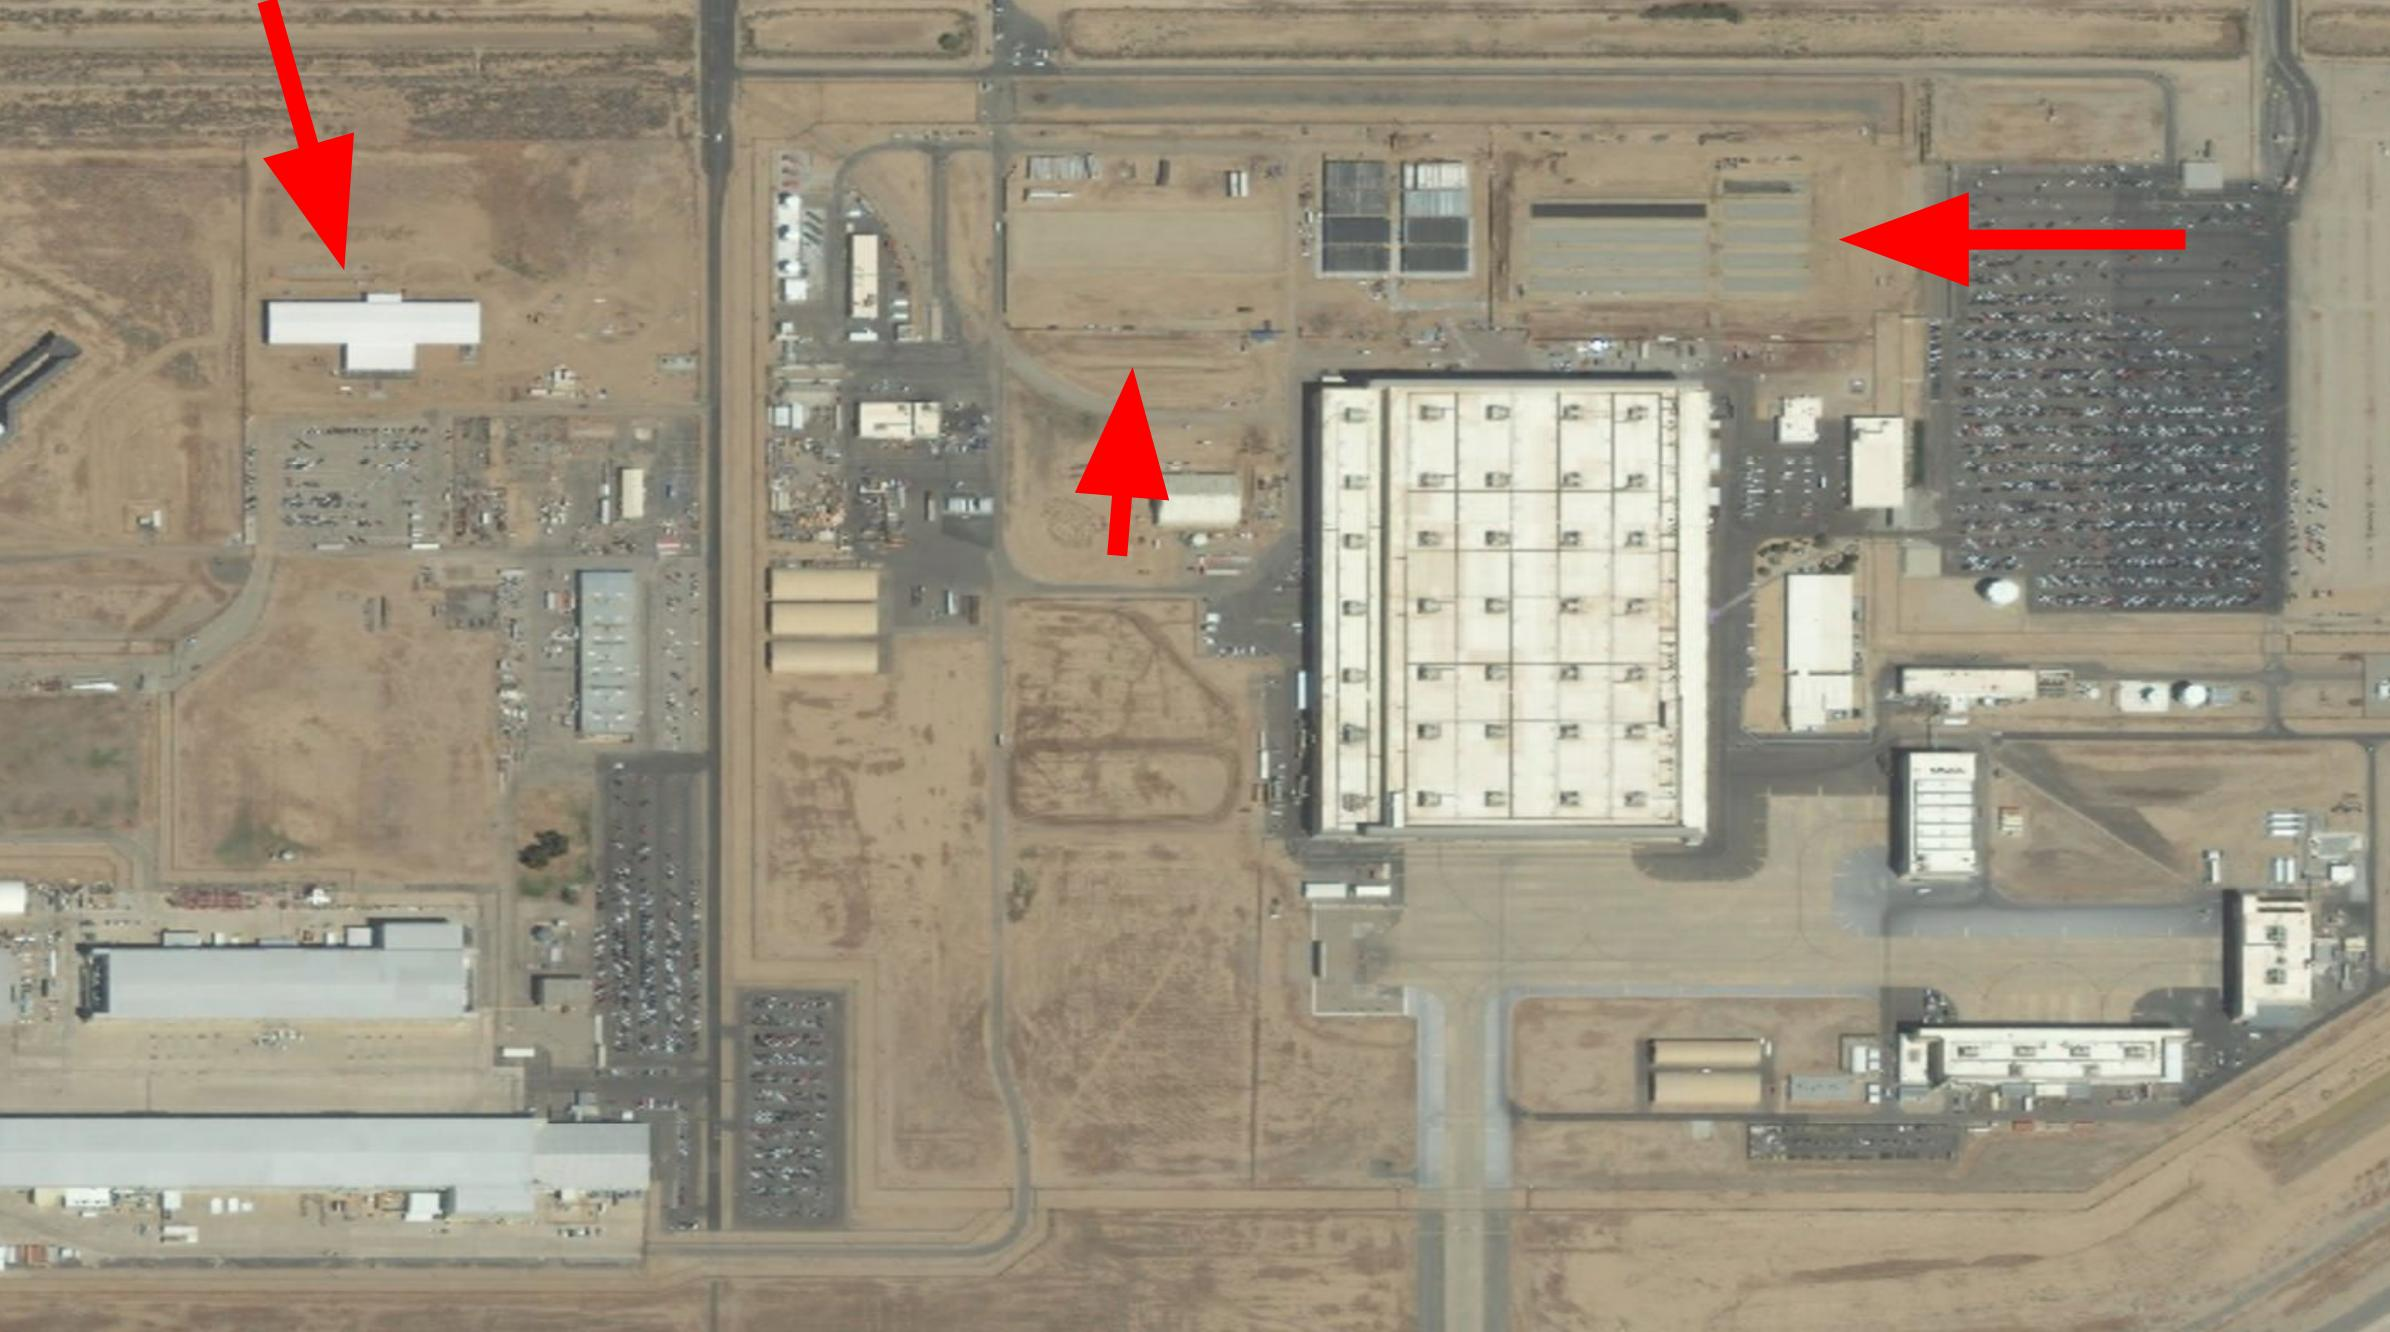 New Plant Former S 3 And S 4 At Northrop Grumman S Facility At